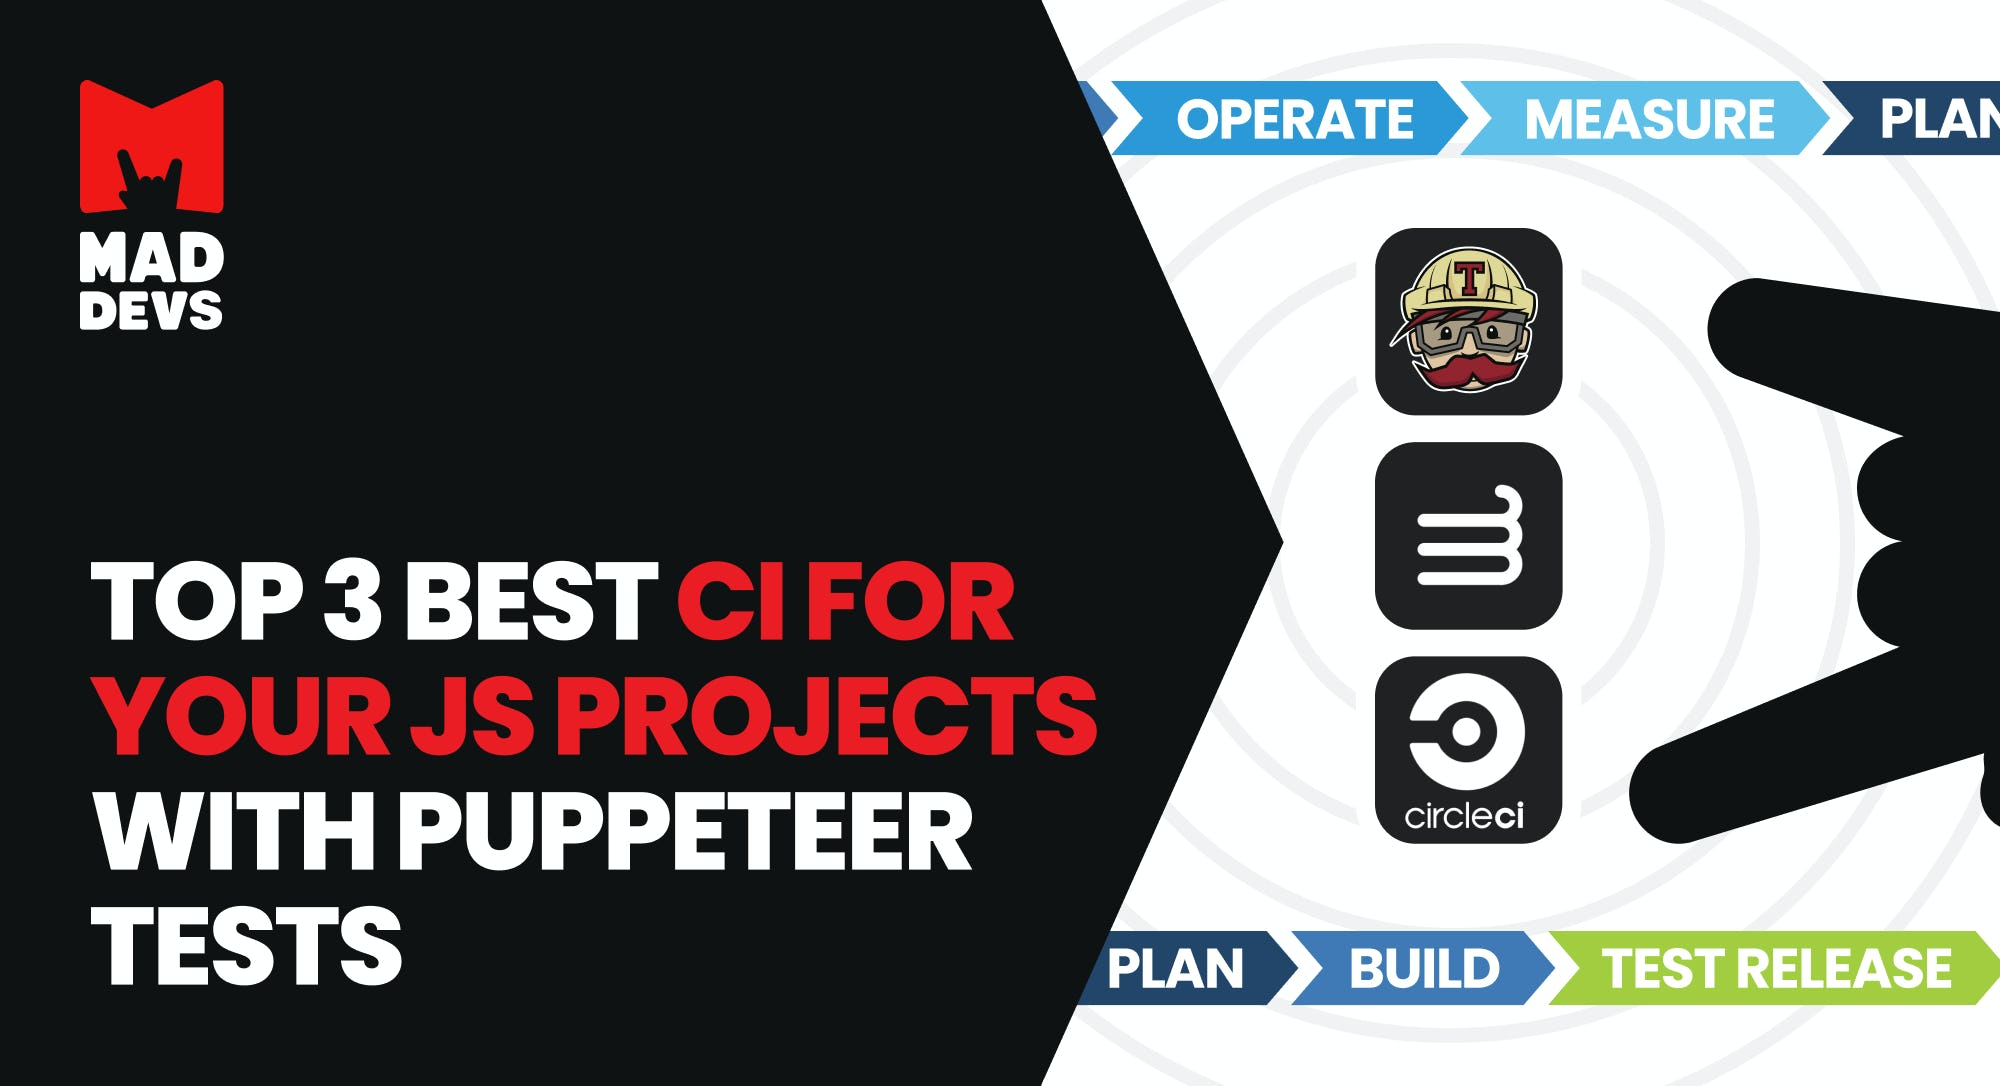 Top 3 best CI for your JS projects with Puppeteer tests